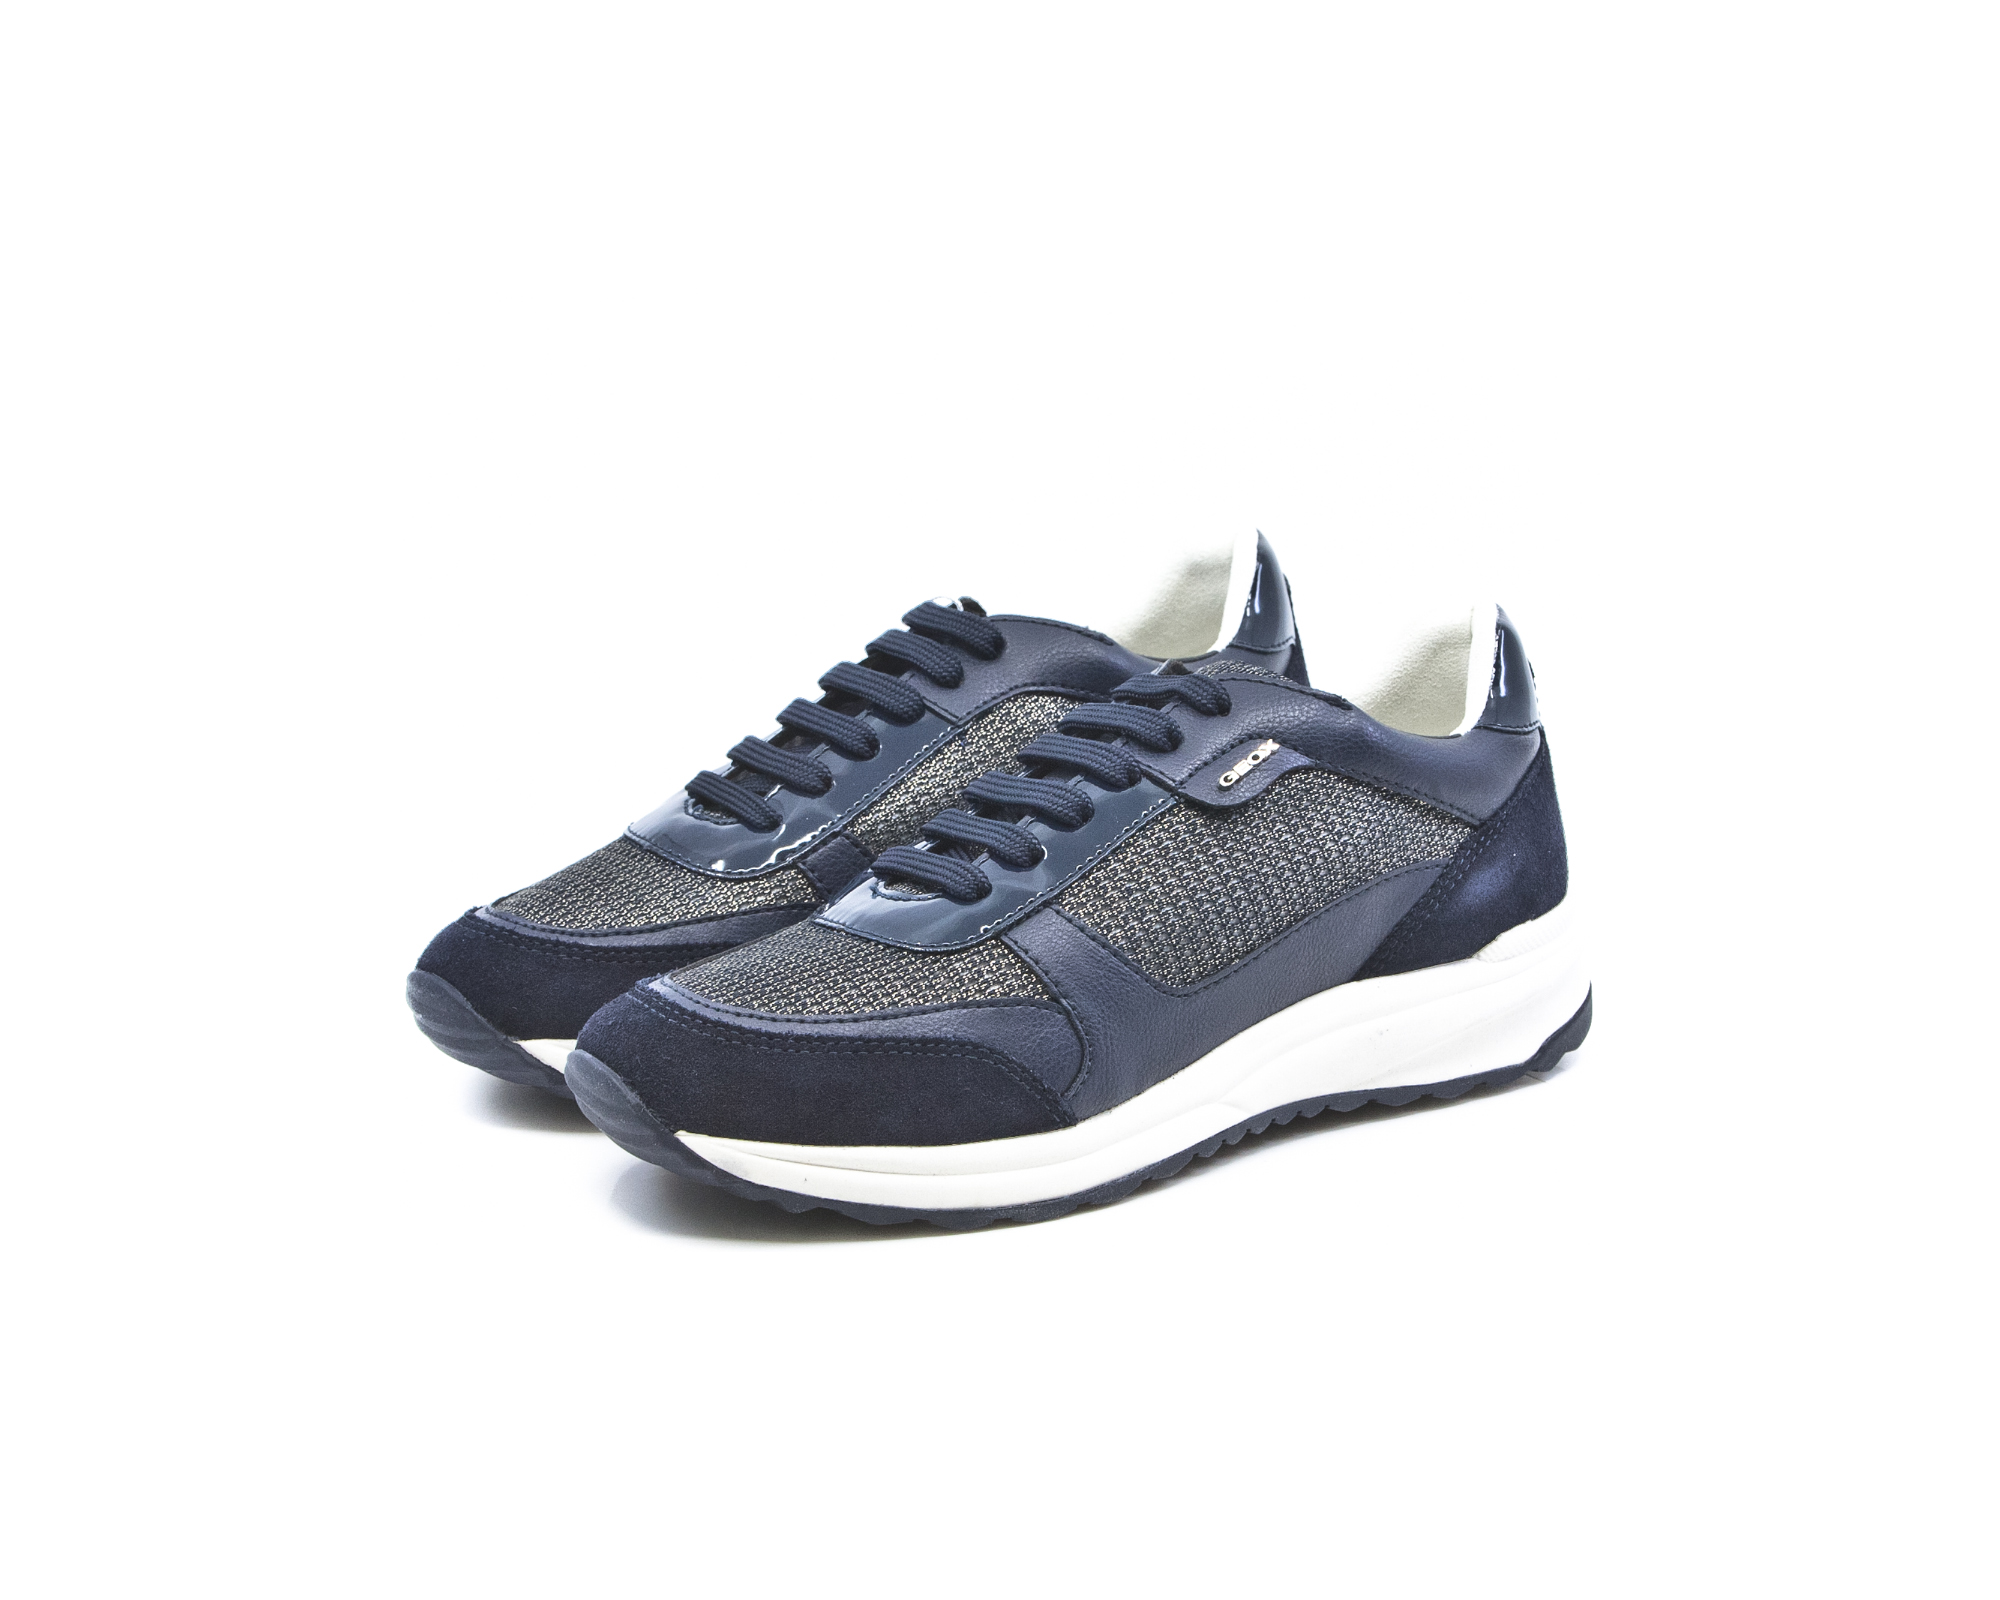 d3a0494e040 Geox Airell Γυναικεία Ανατομικά Sneakers Navy (D642SC 0LY22 C4002 ...